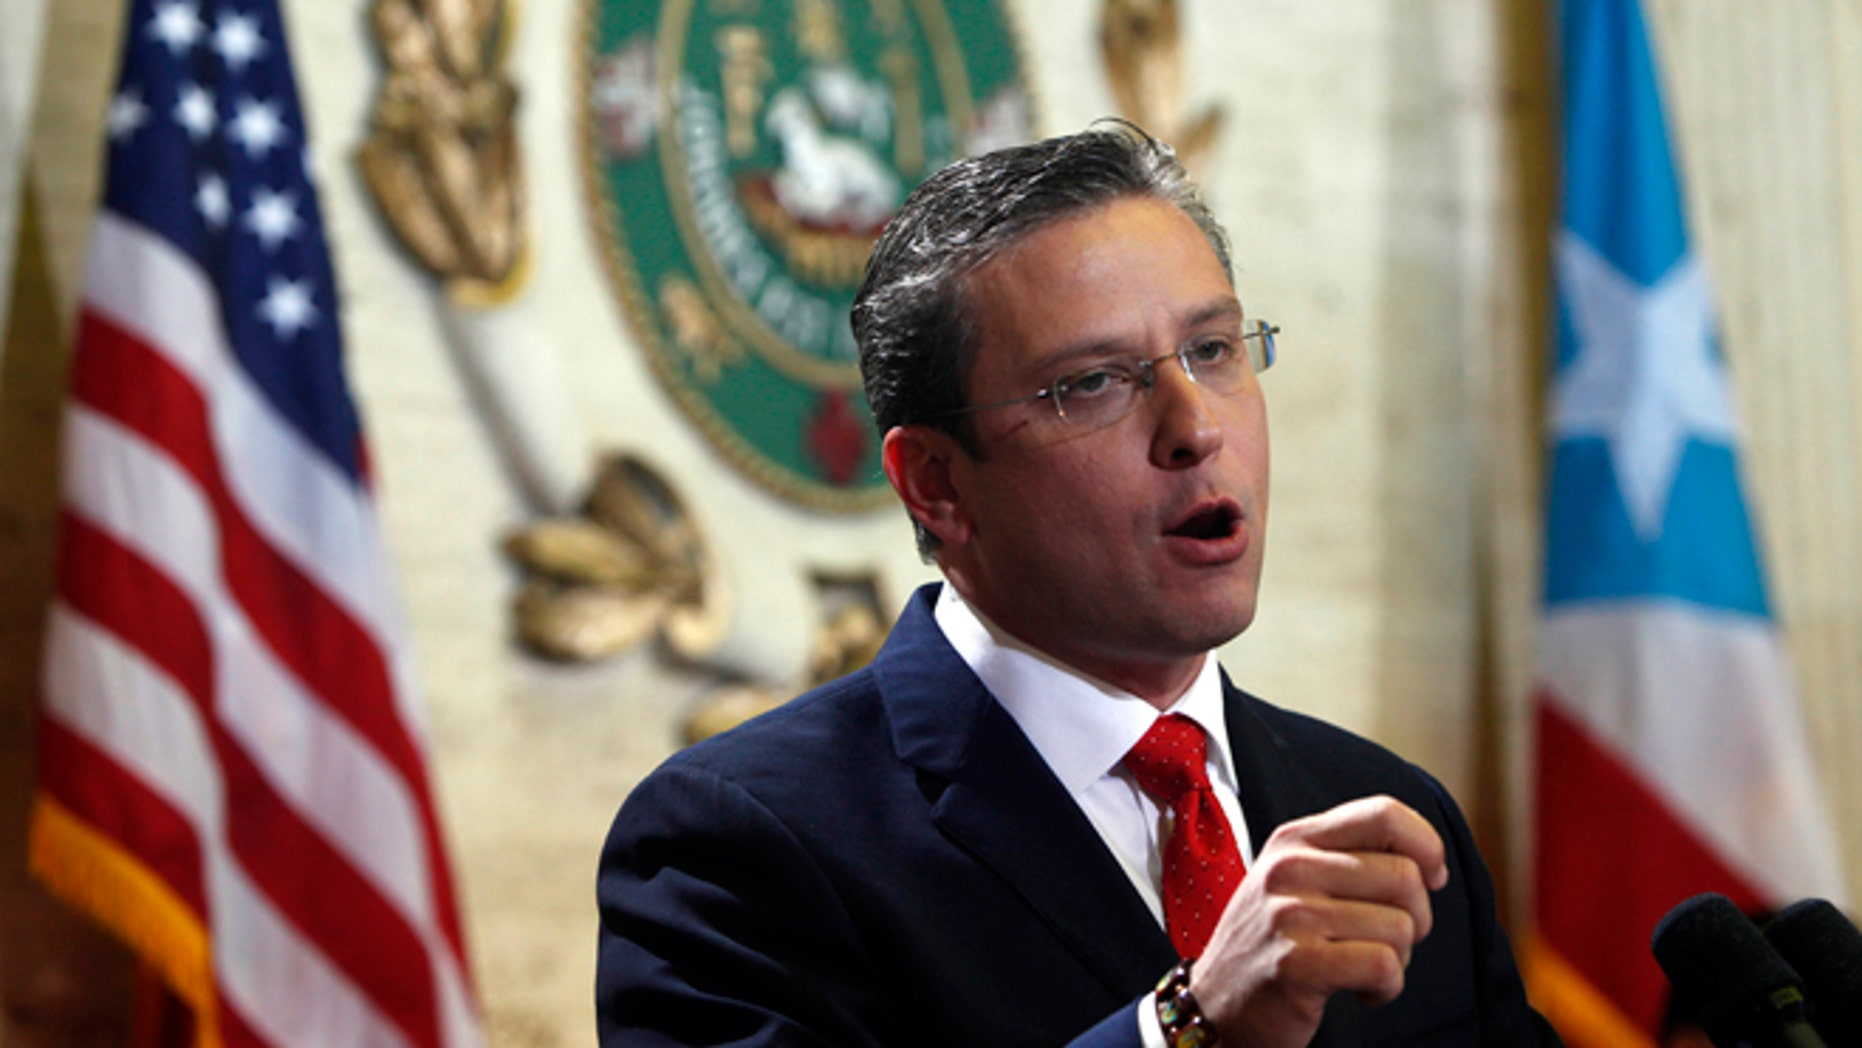 FILE - In this April 25, 2013 file photo, Puerto Rico Gov. Alejandro Garcia Padilla speaks during a state of the commonwealth address at the Capitol building in San Juan, Puerto Rico. A new plan backed by Garcia aims to boost revenue and tackle the U.S. territory's spiraling public debt by creating a 16 percent value-added tax, or VAT. If approved, manufacturers would pay the tax on raw materials and include it in the price of the product sold to retailers, who then would pass it on to consumers. (AP Photo/Ricardo Arduengo, File)